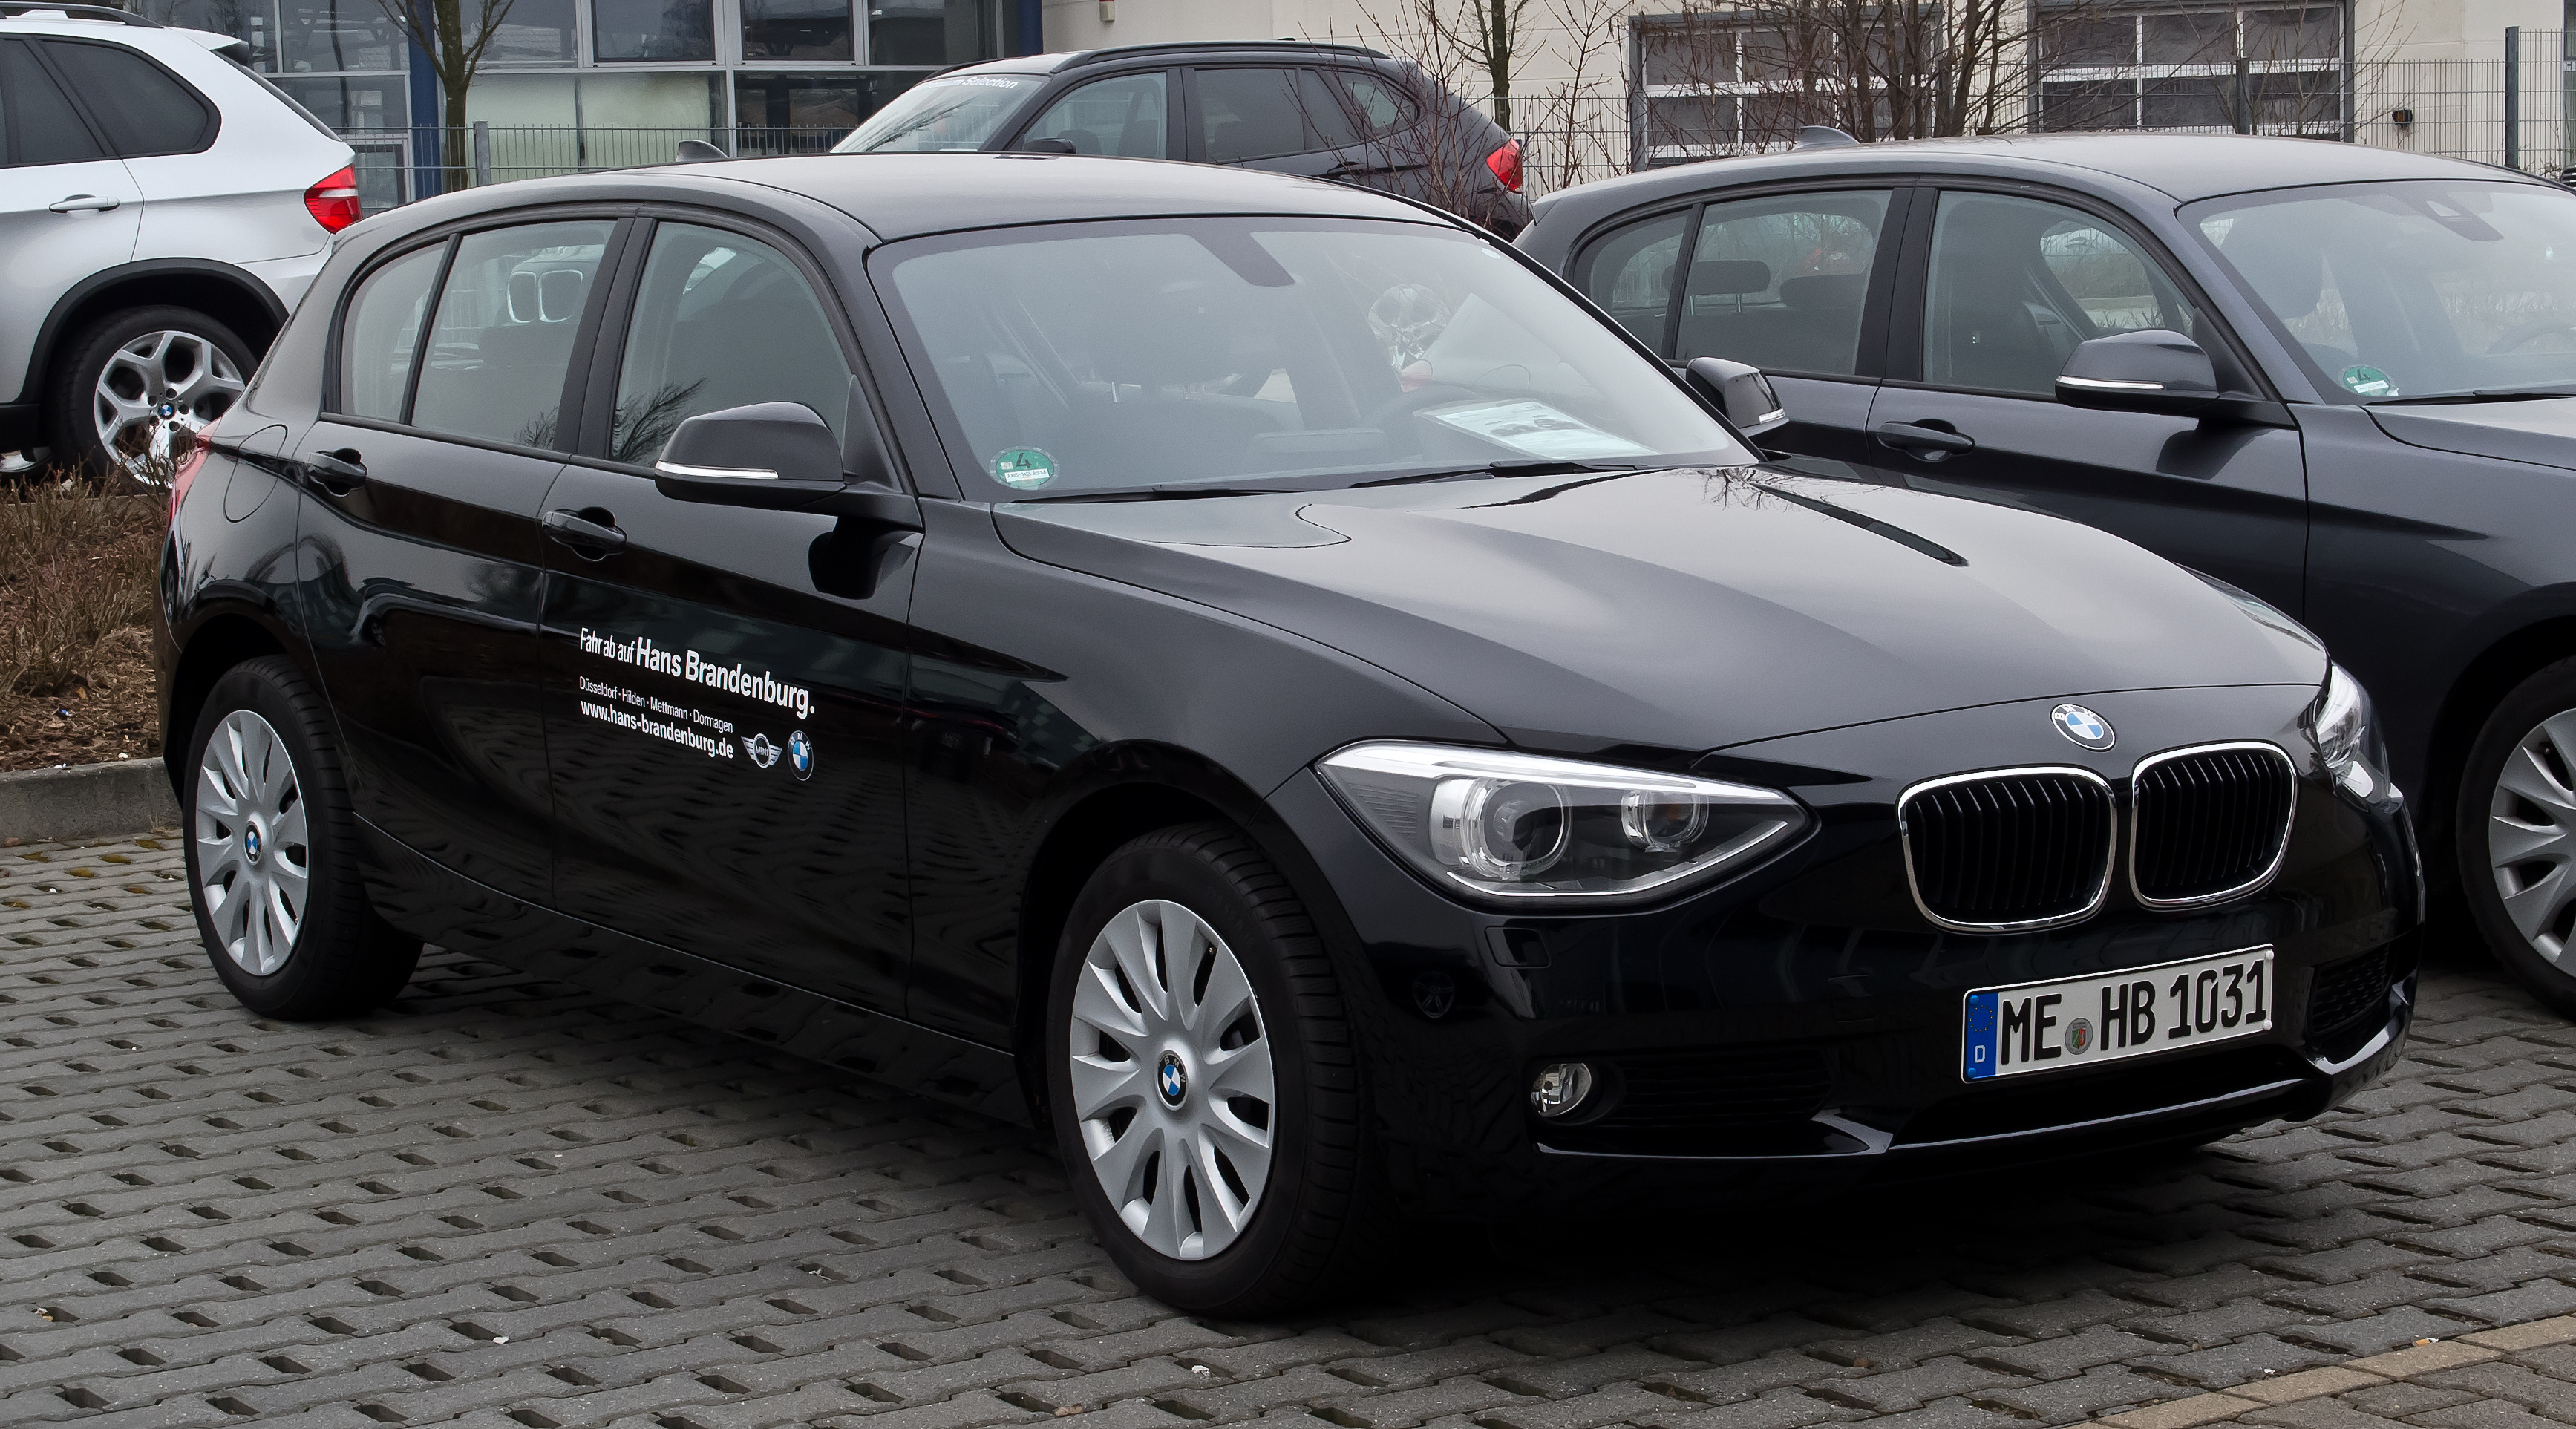 bmw 116i 2012 review amazing pictures and images look at the car. Black Bedroom Furniture Sets. Home Design Ideas